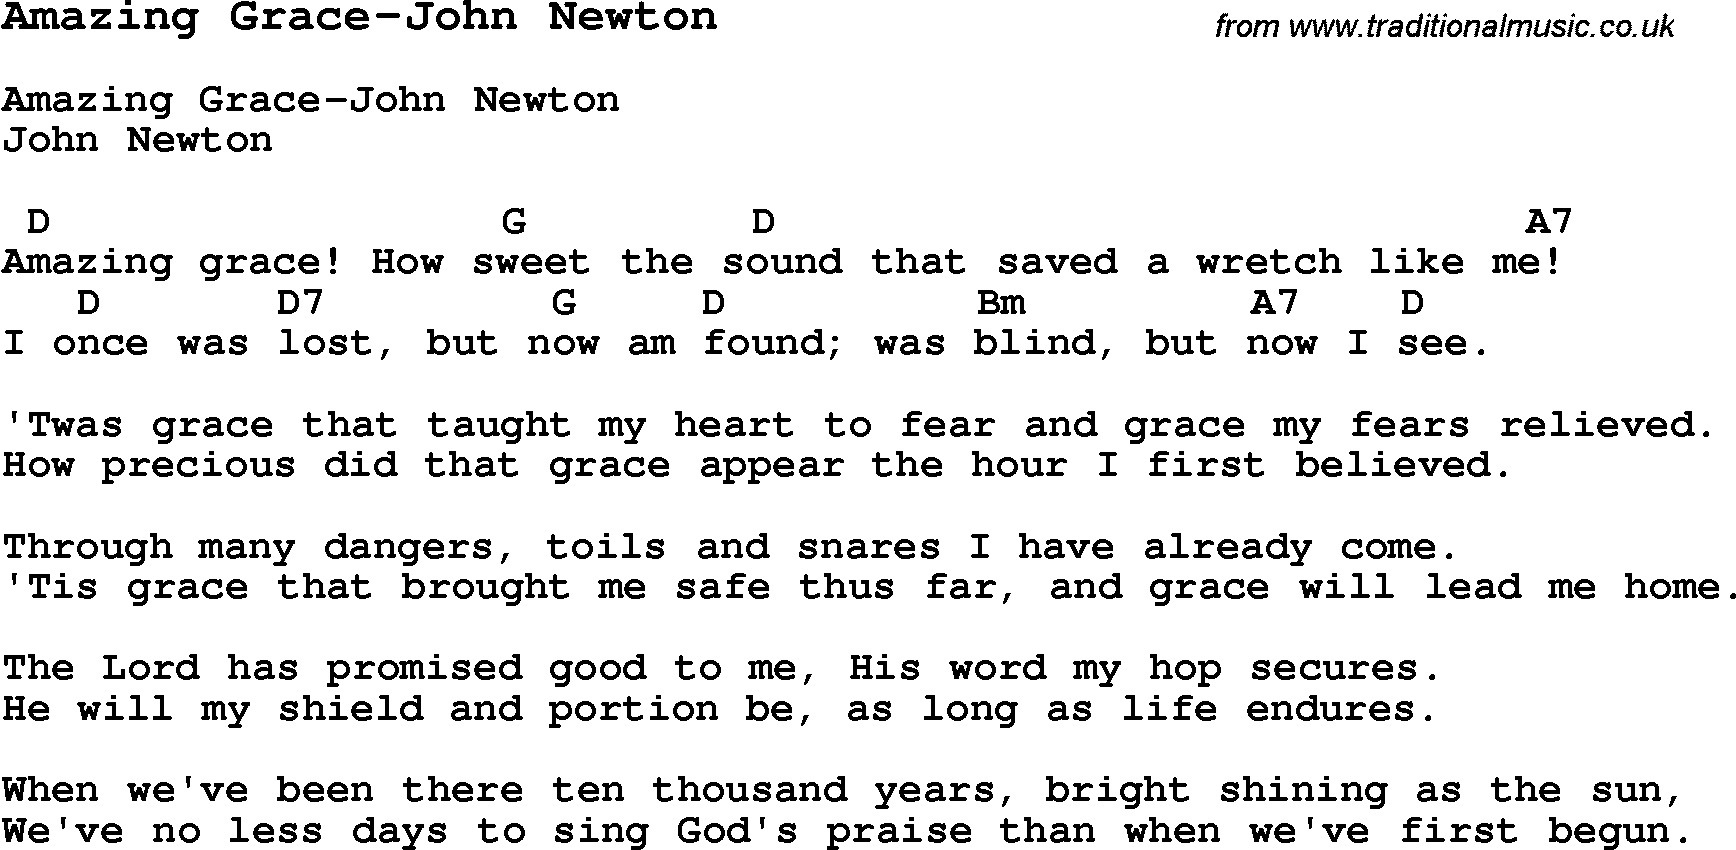 Summer Camp Song, Amazing Grace-John Newton, with lyrics and chords for Ukulele, Guitar, Banjo etc.